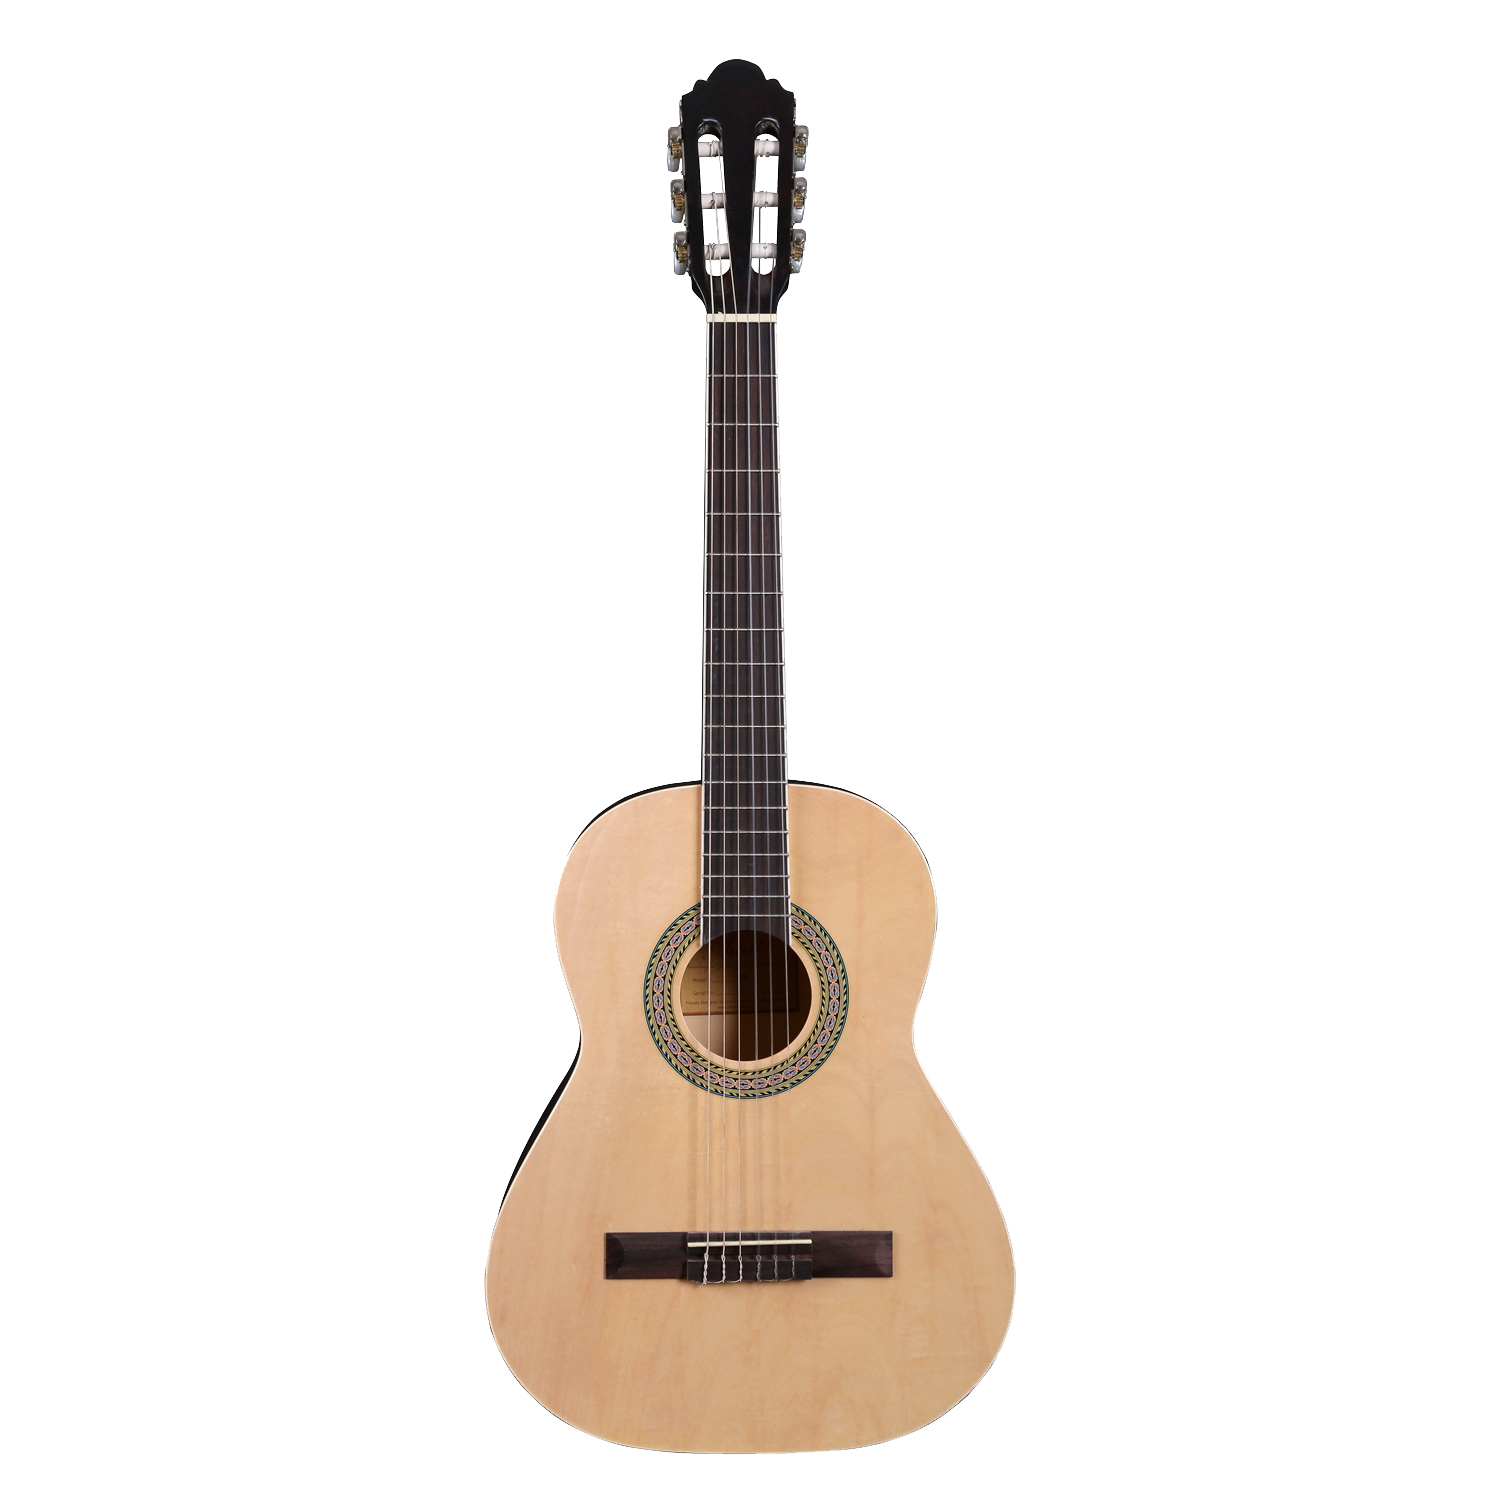 1/2 Size Classical Guitar by Trax Natural